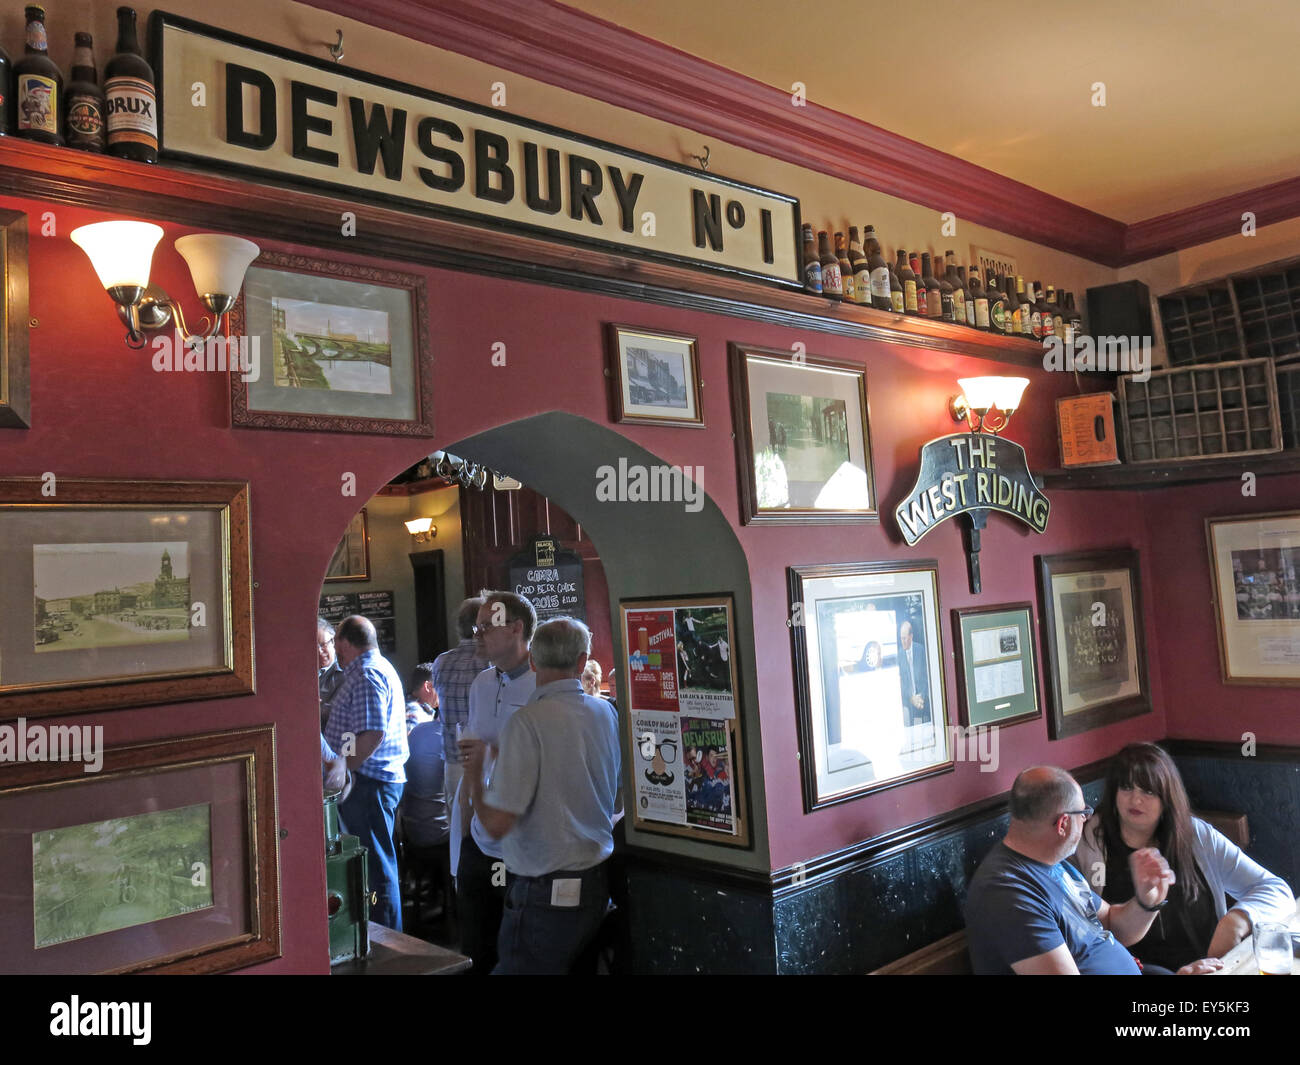 West Riding Pub, Dewsbury Railway Station, West Yorkshire, England, UK,Dewsbury No 1 - Stock Image